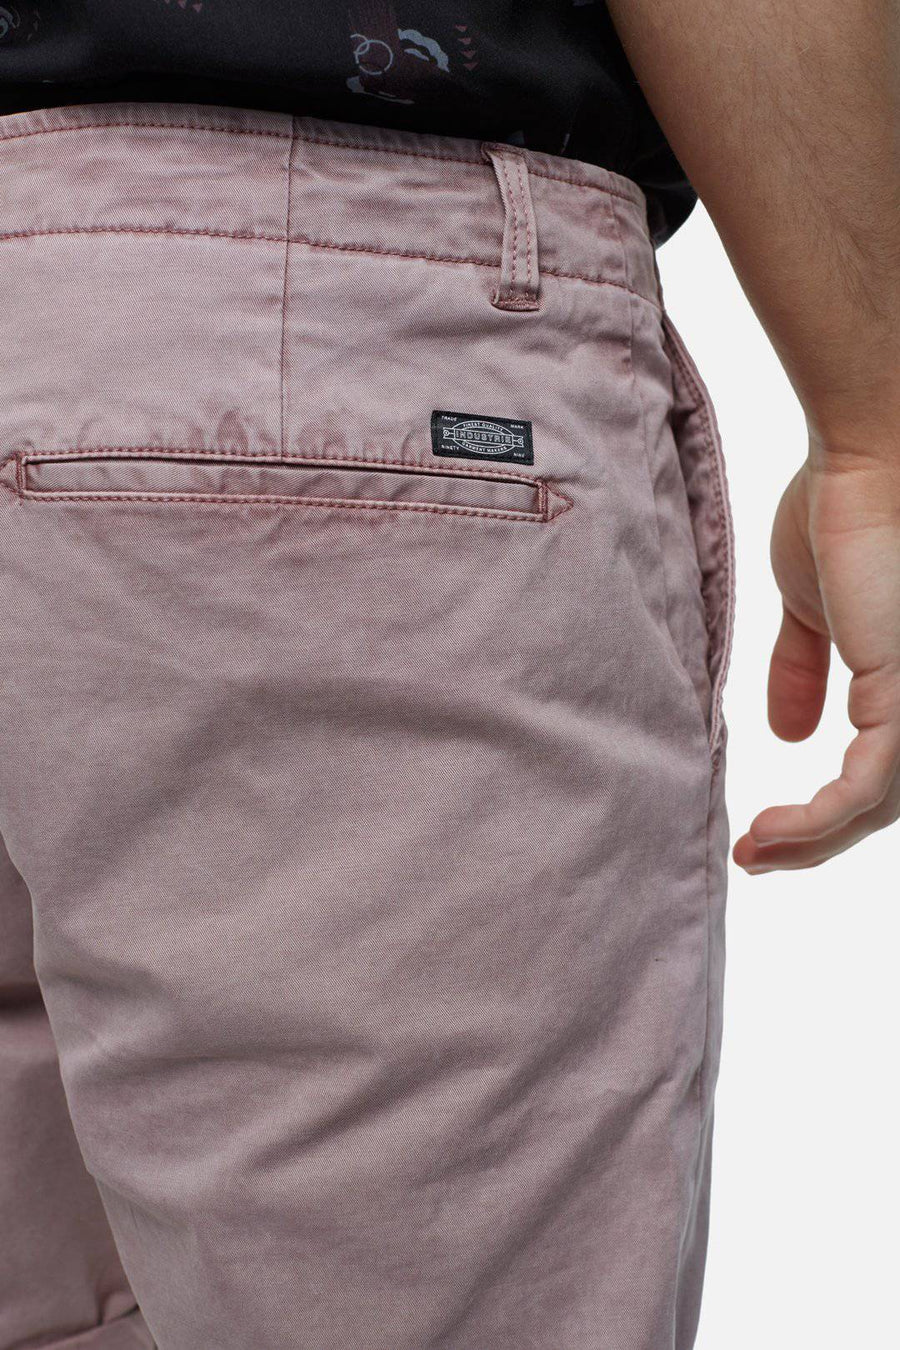 Mauve Washed Rinse Shorts - South of London